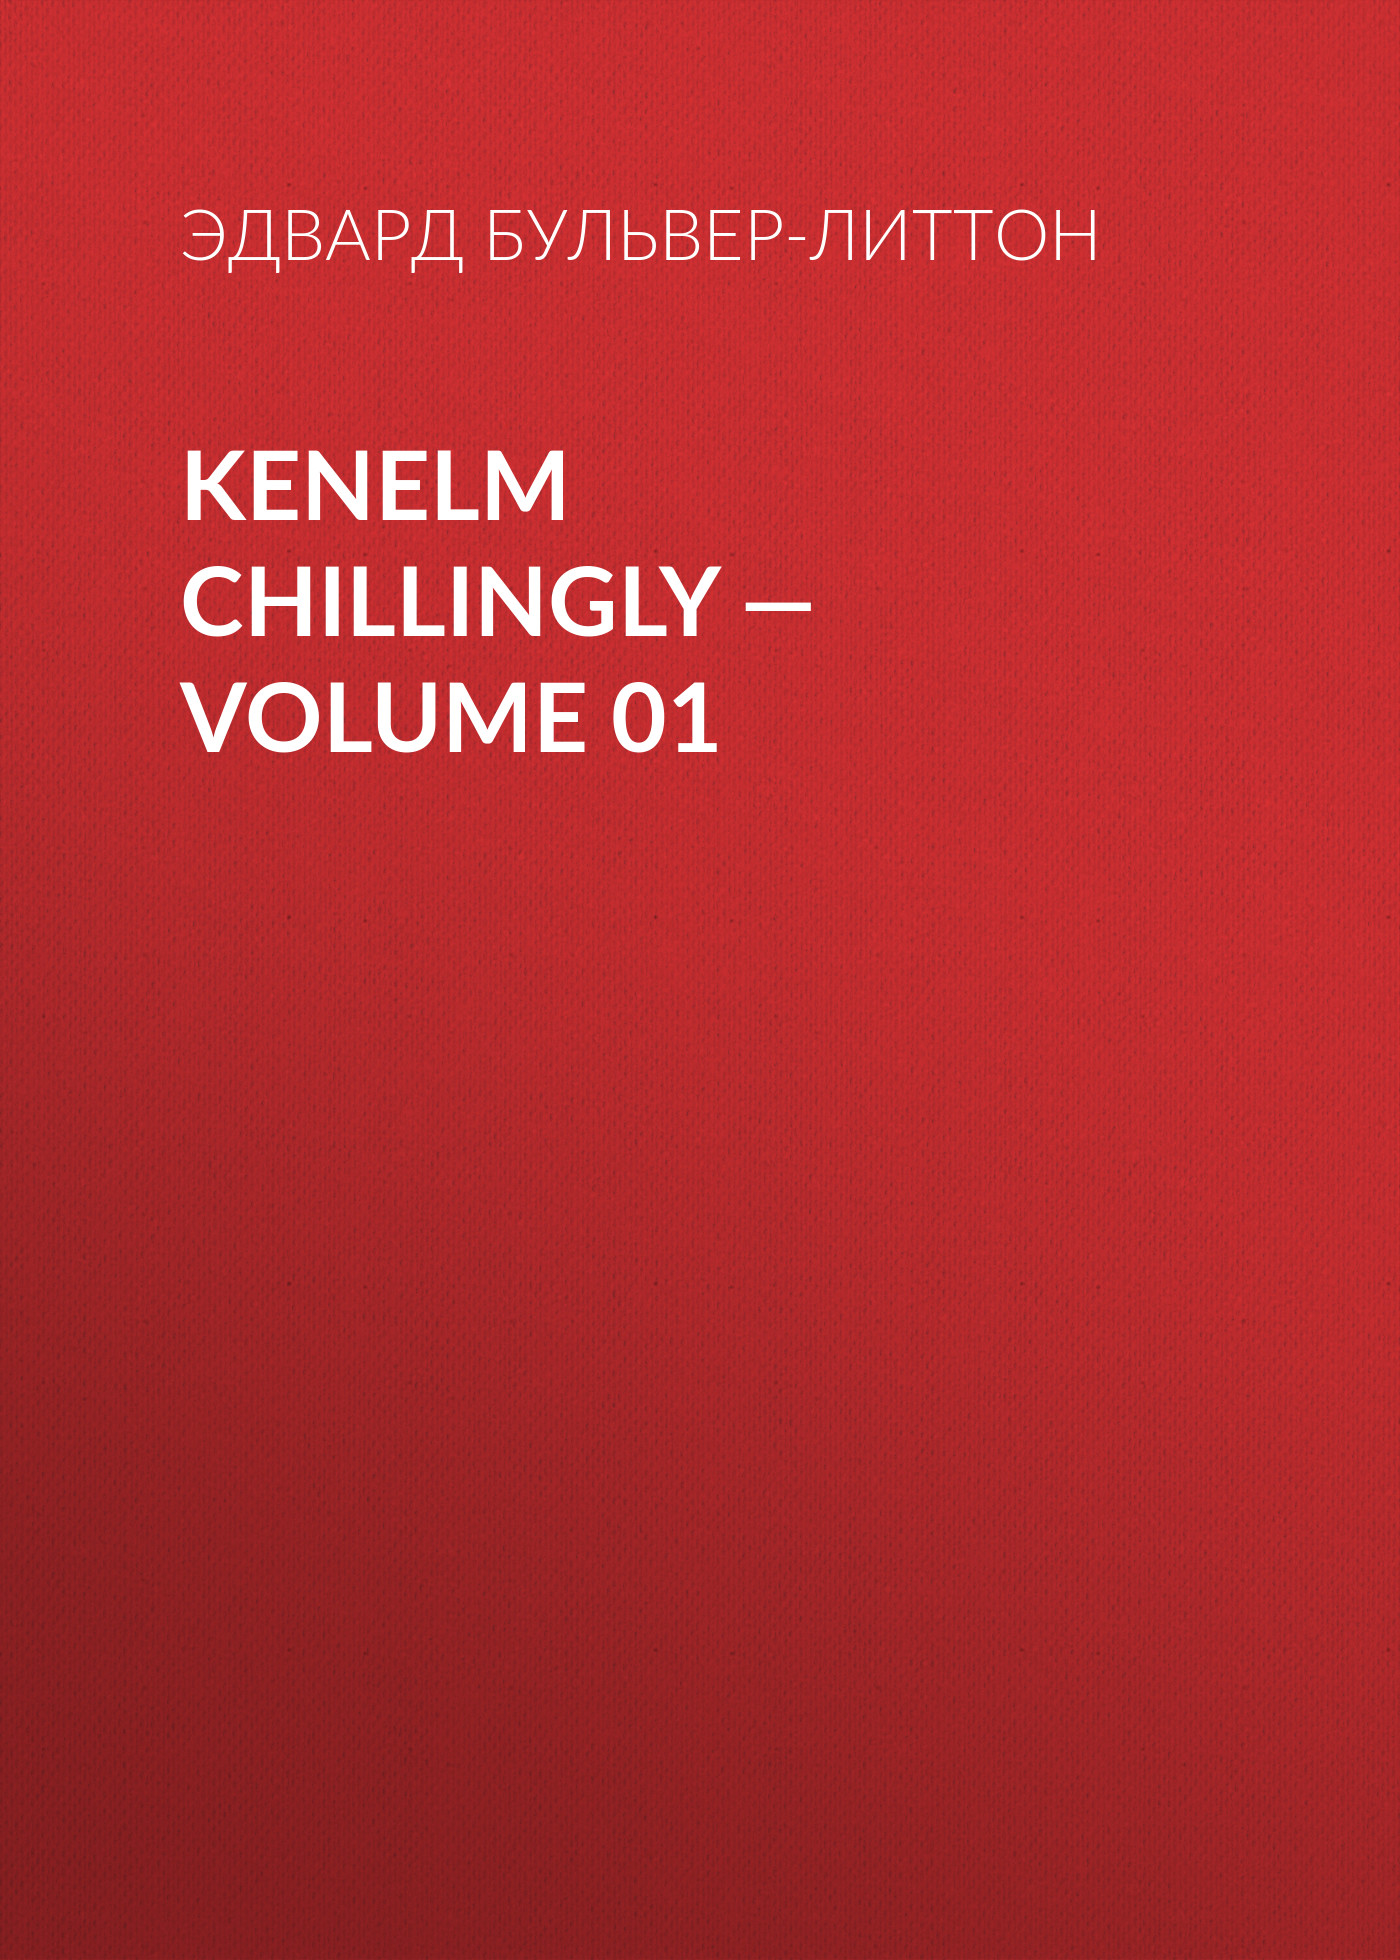 Эдвард Бульвер-Литтон Kenelm Chillingly — Volume 01 эдвард бульвер литтон devereux volume 01